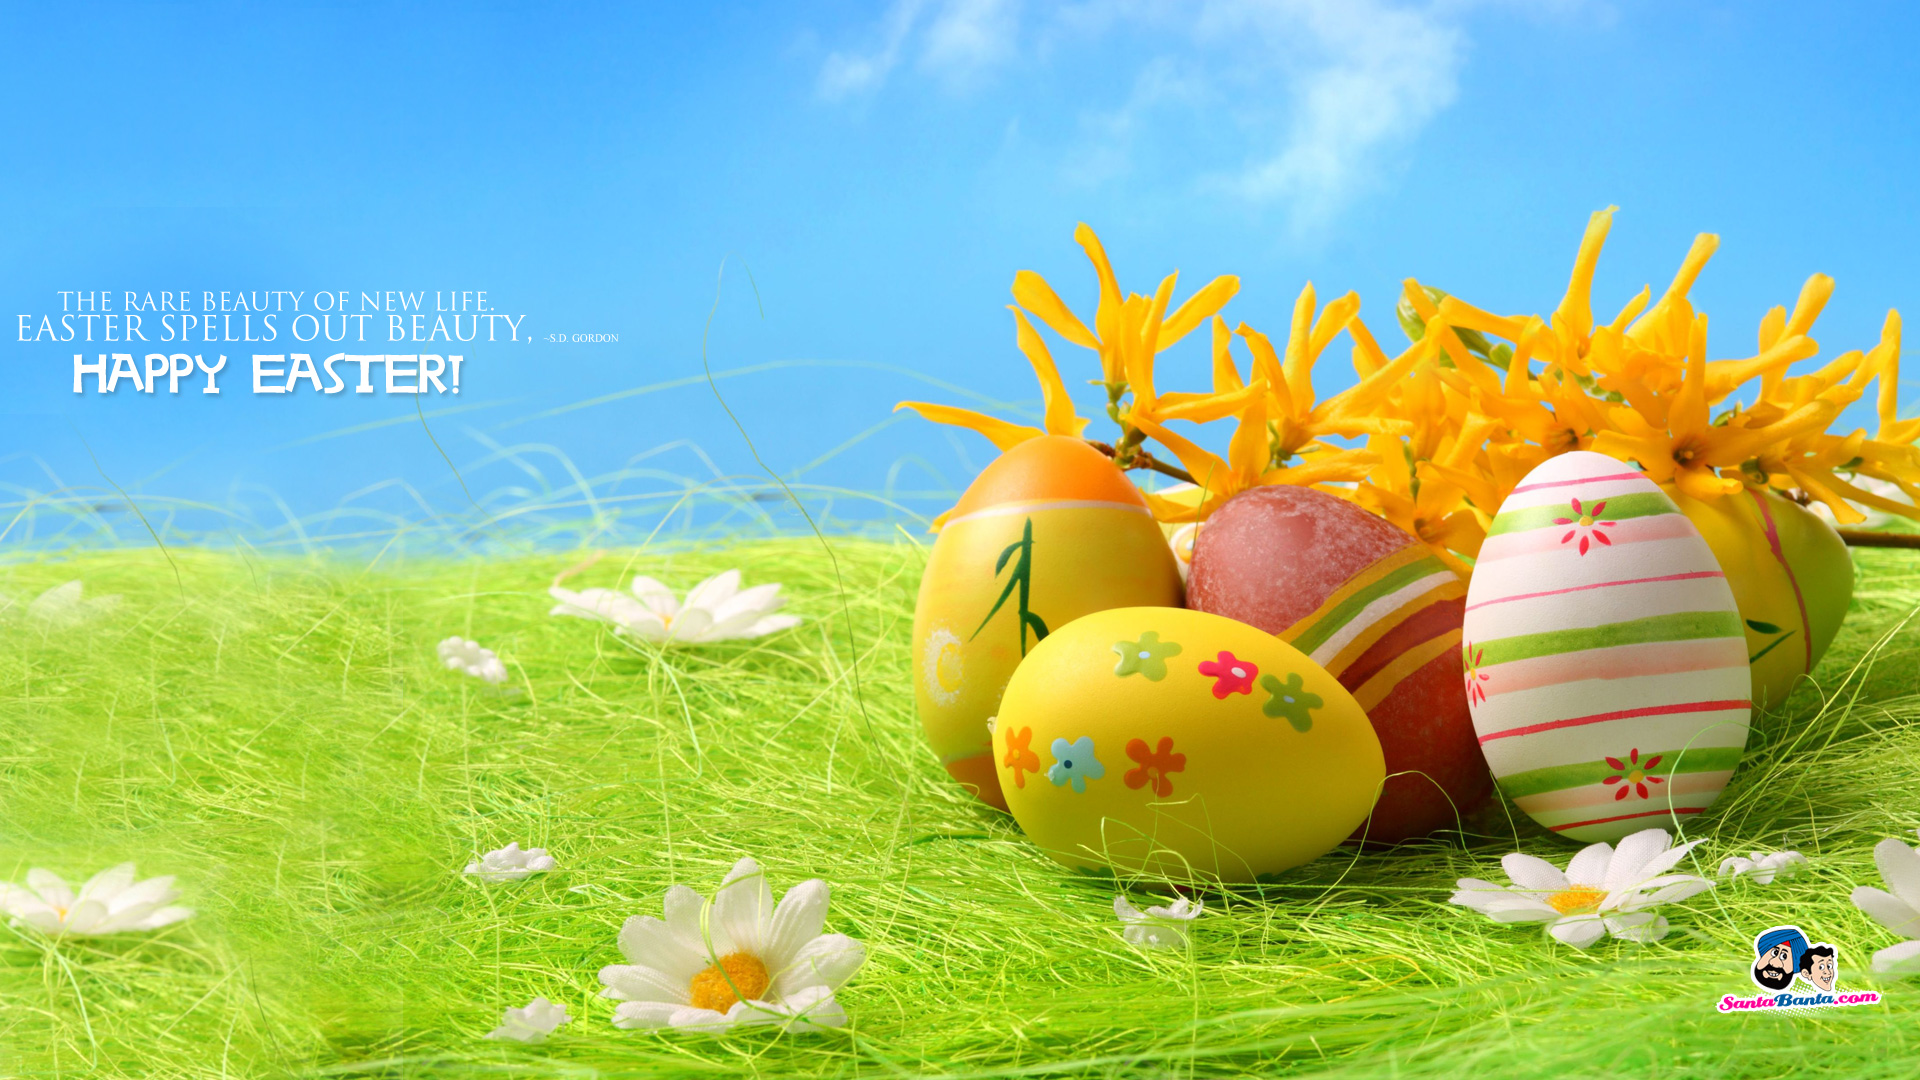 File Name : Happy Easter Wallpapers